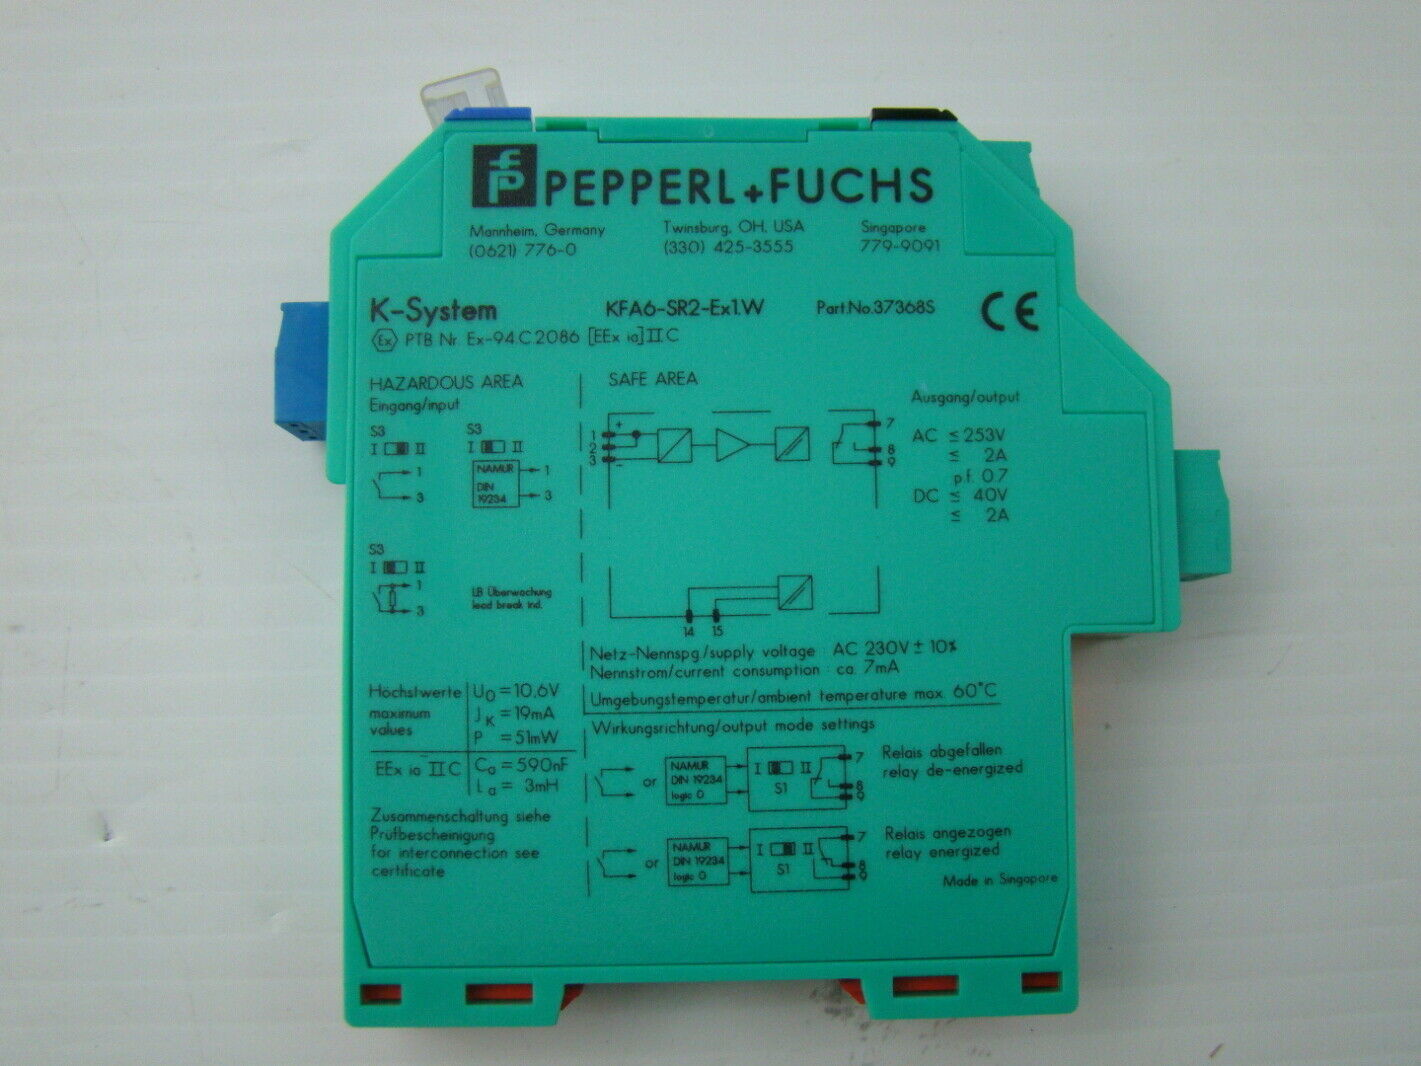 jf07188 pepperl fuchs isolated switch amplifier kfa6 sr2 ex1w pepperl fuchs isolated switch amplifier kfa6 sr2 ex1 w ebay kfd2-sr2-ex1.w wiring diagram at gsmportal.co